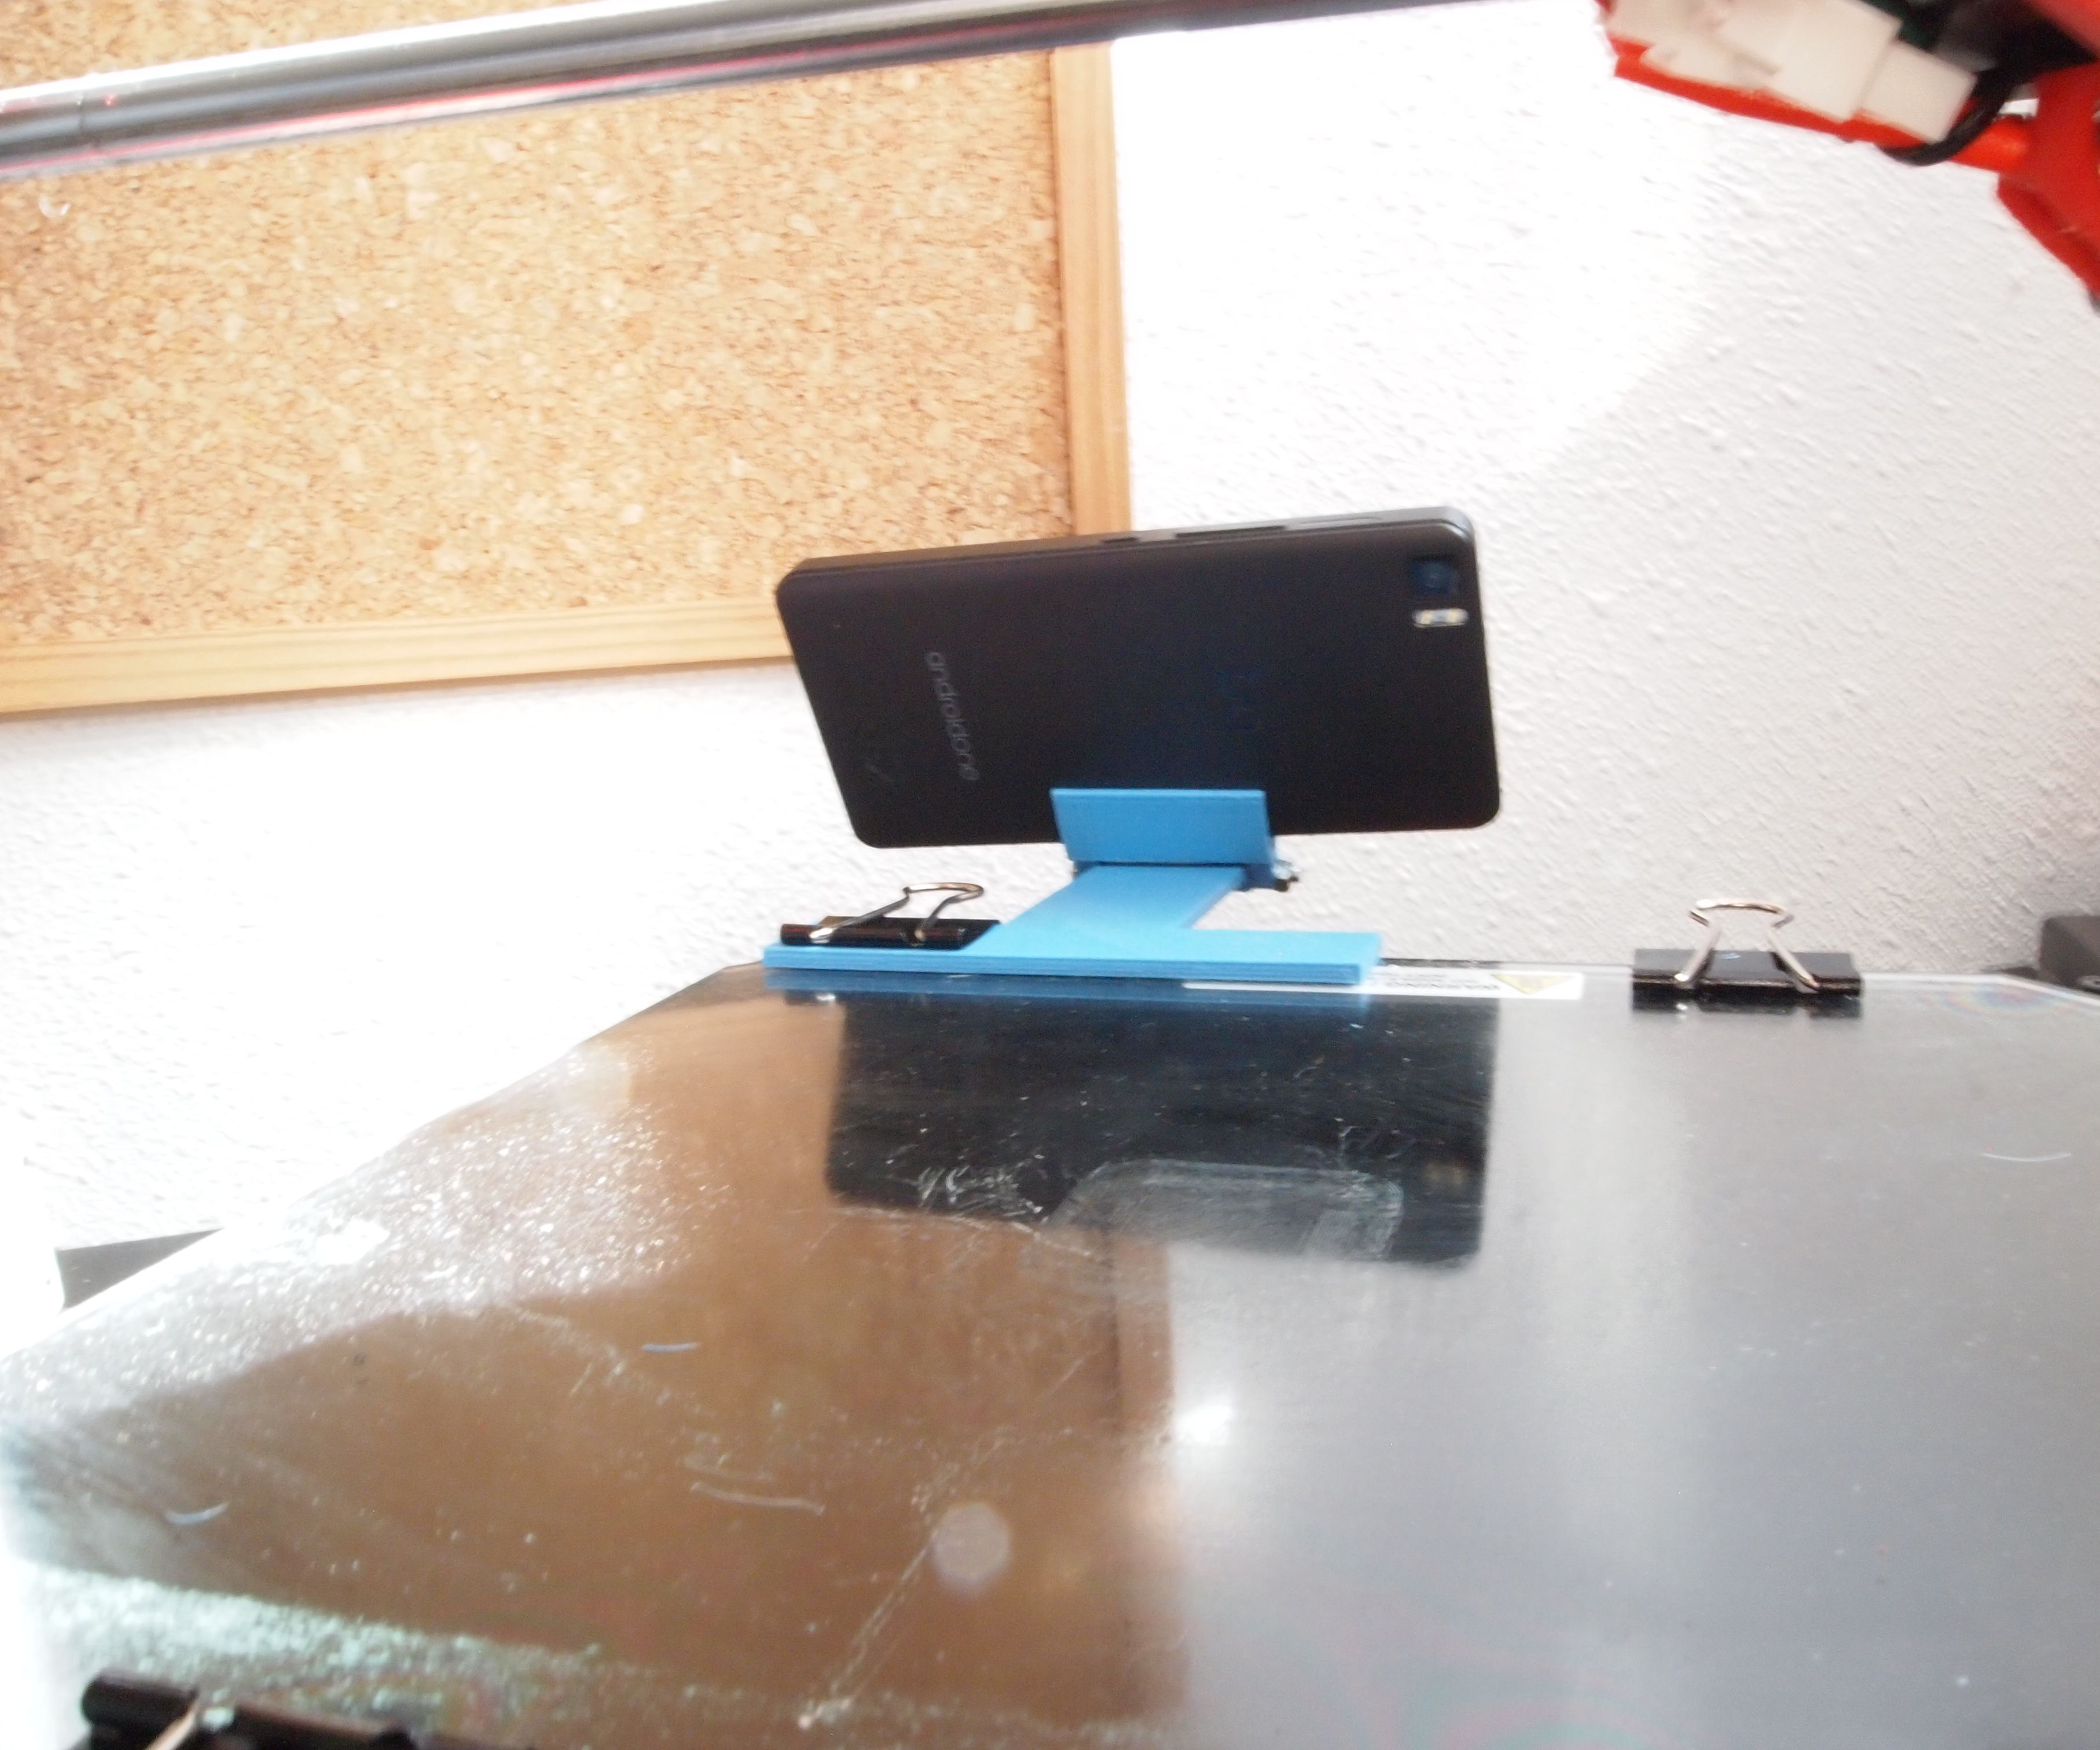 3D printed Time Lapse holder for Prusa